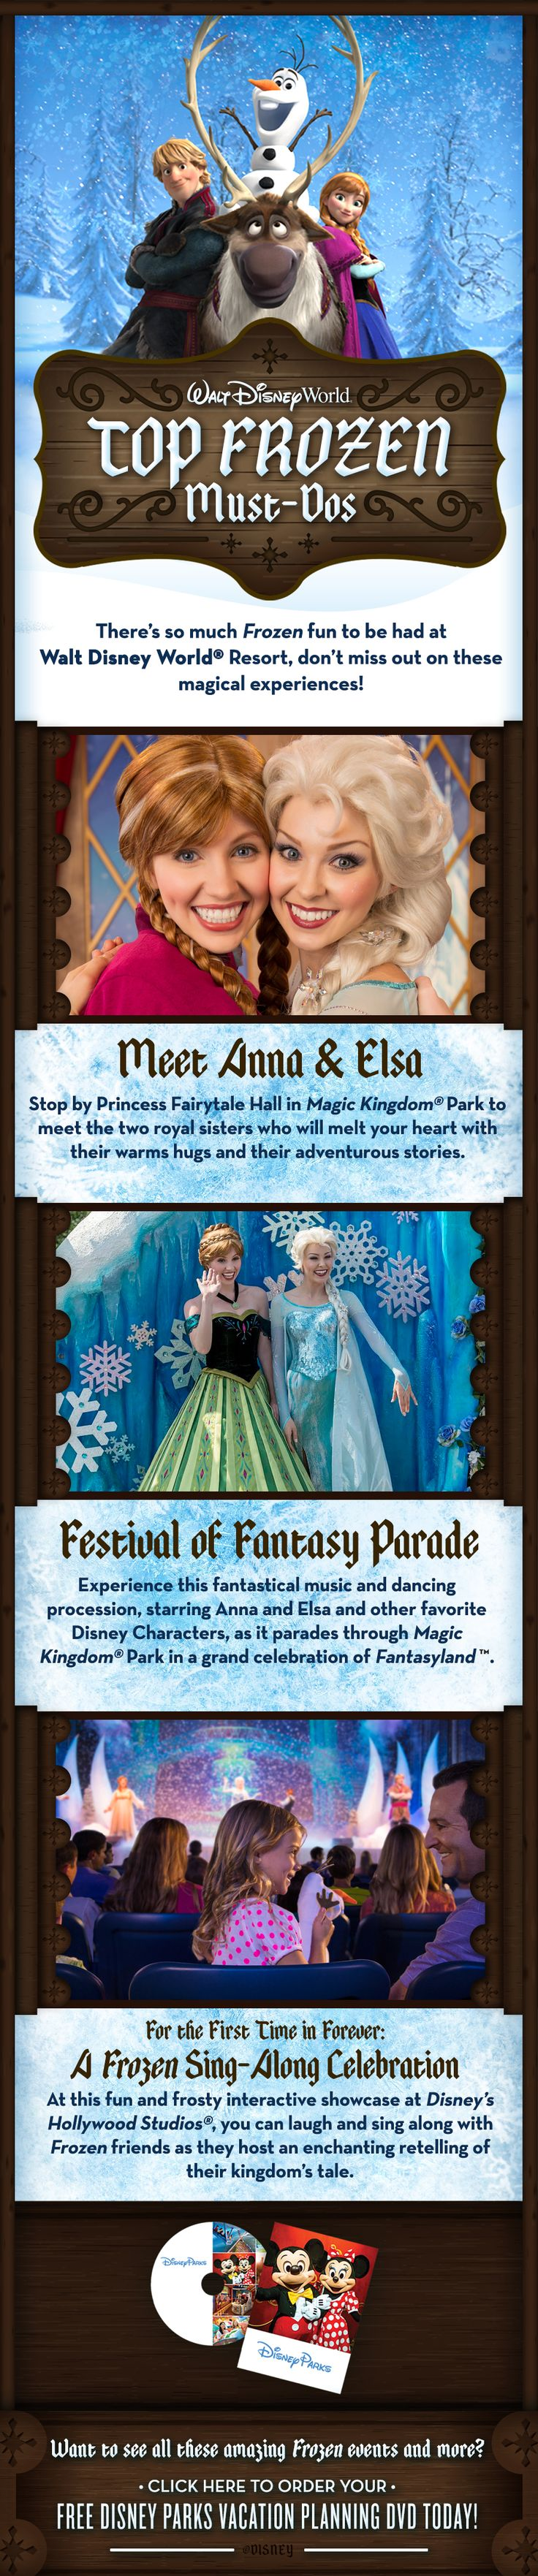 Top Frozen Must-Dos at Walt Disney World featuring Anna, Elsa and Olaf! Stay here  http://www.orlandocondoatlegacydunes.com/